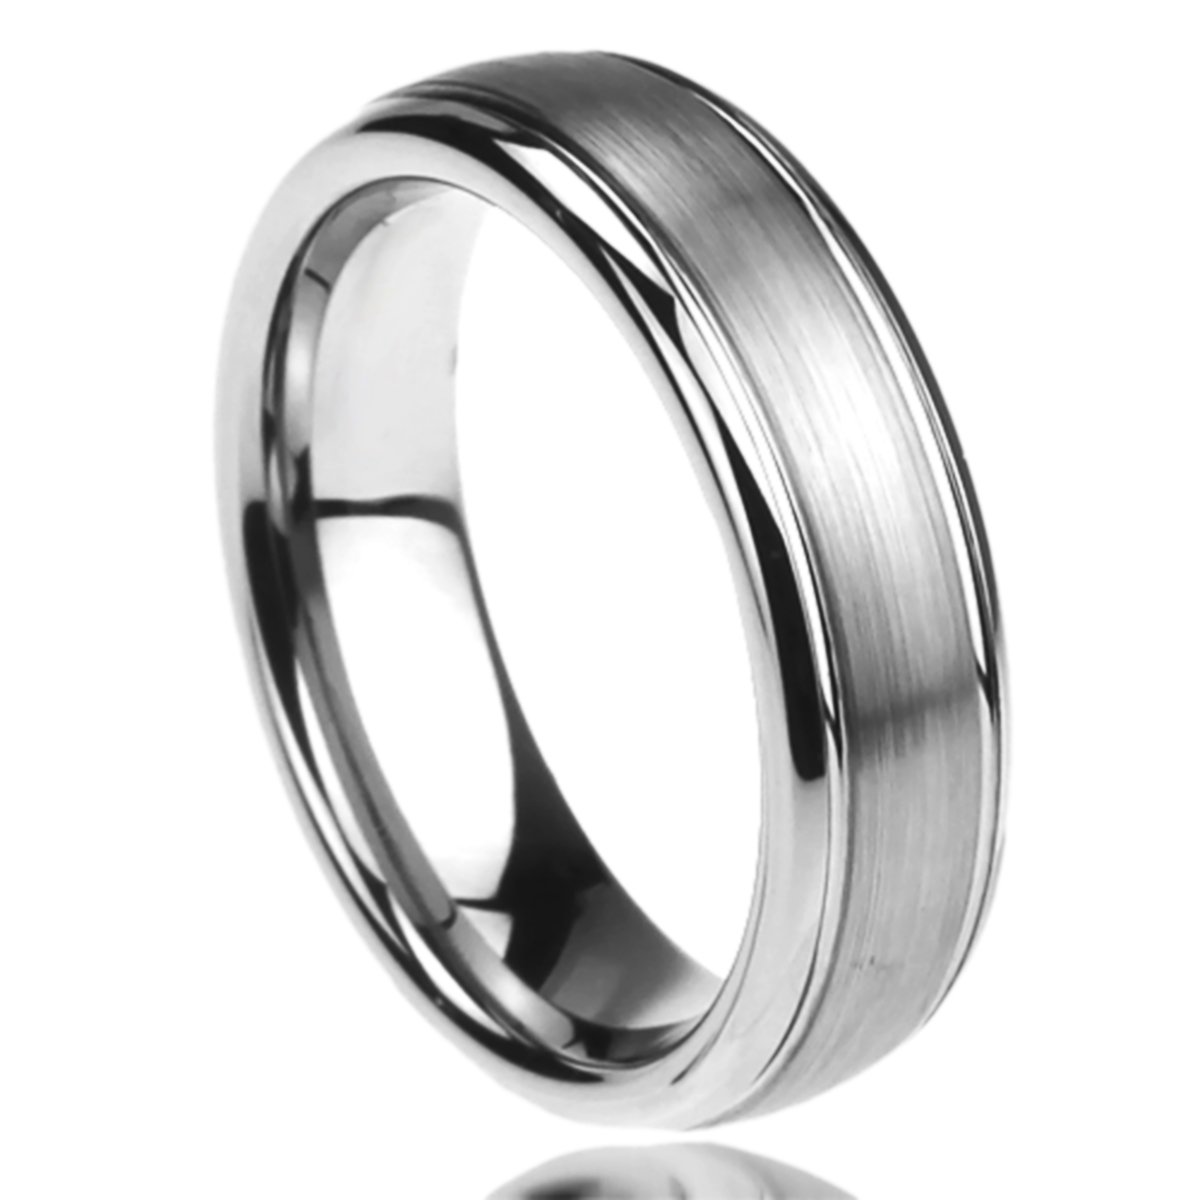 6MM Stainless Steel Wedding Band Ring Brushed Center Domed Classy (6 to 14) - Size: 13